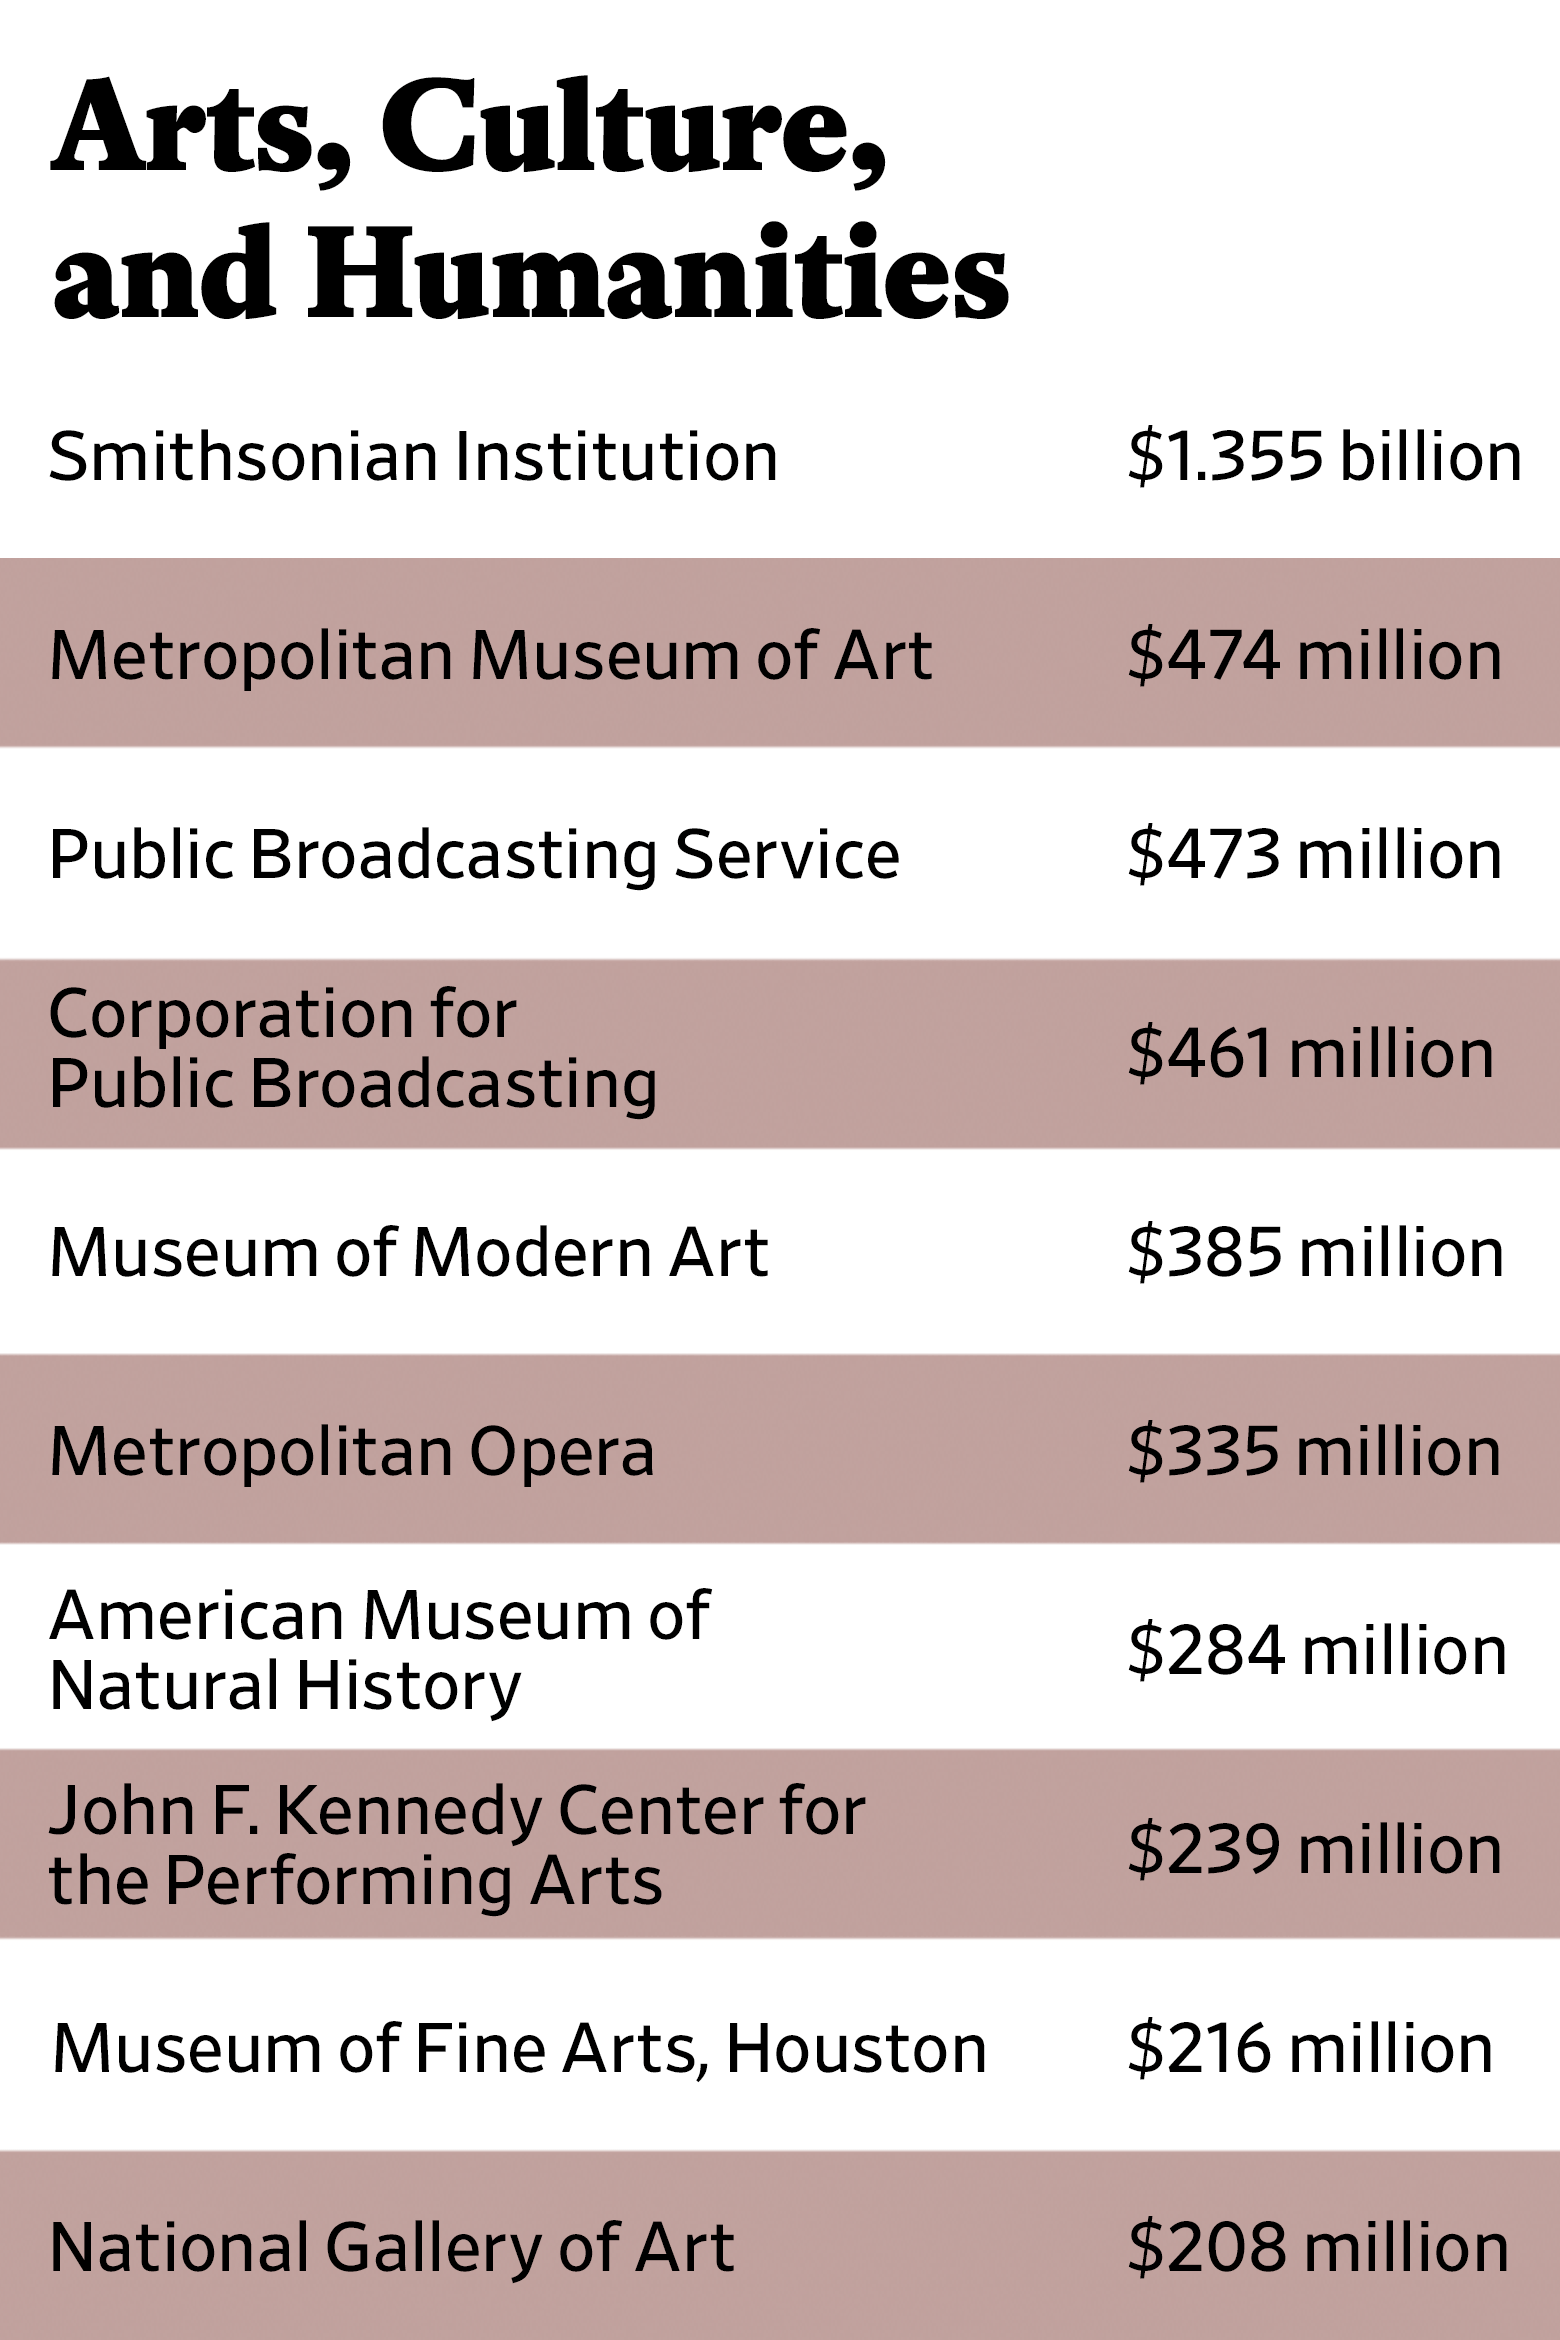 The Slate 90: Arts, Culture, and Humanities rankings via fiscal 2015 revenue for organizations who filed Form 990 with the IRS.